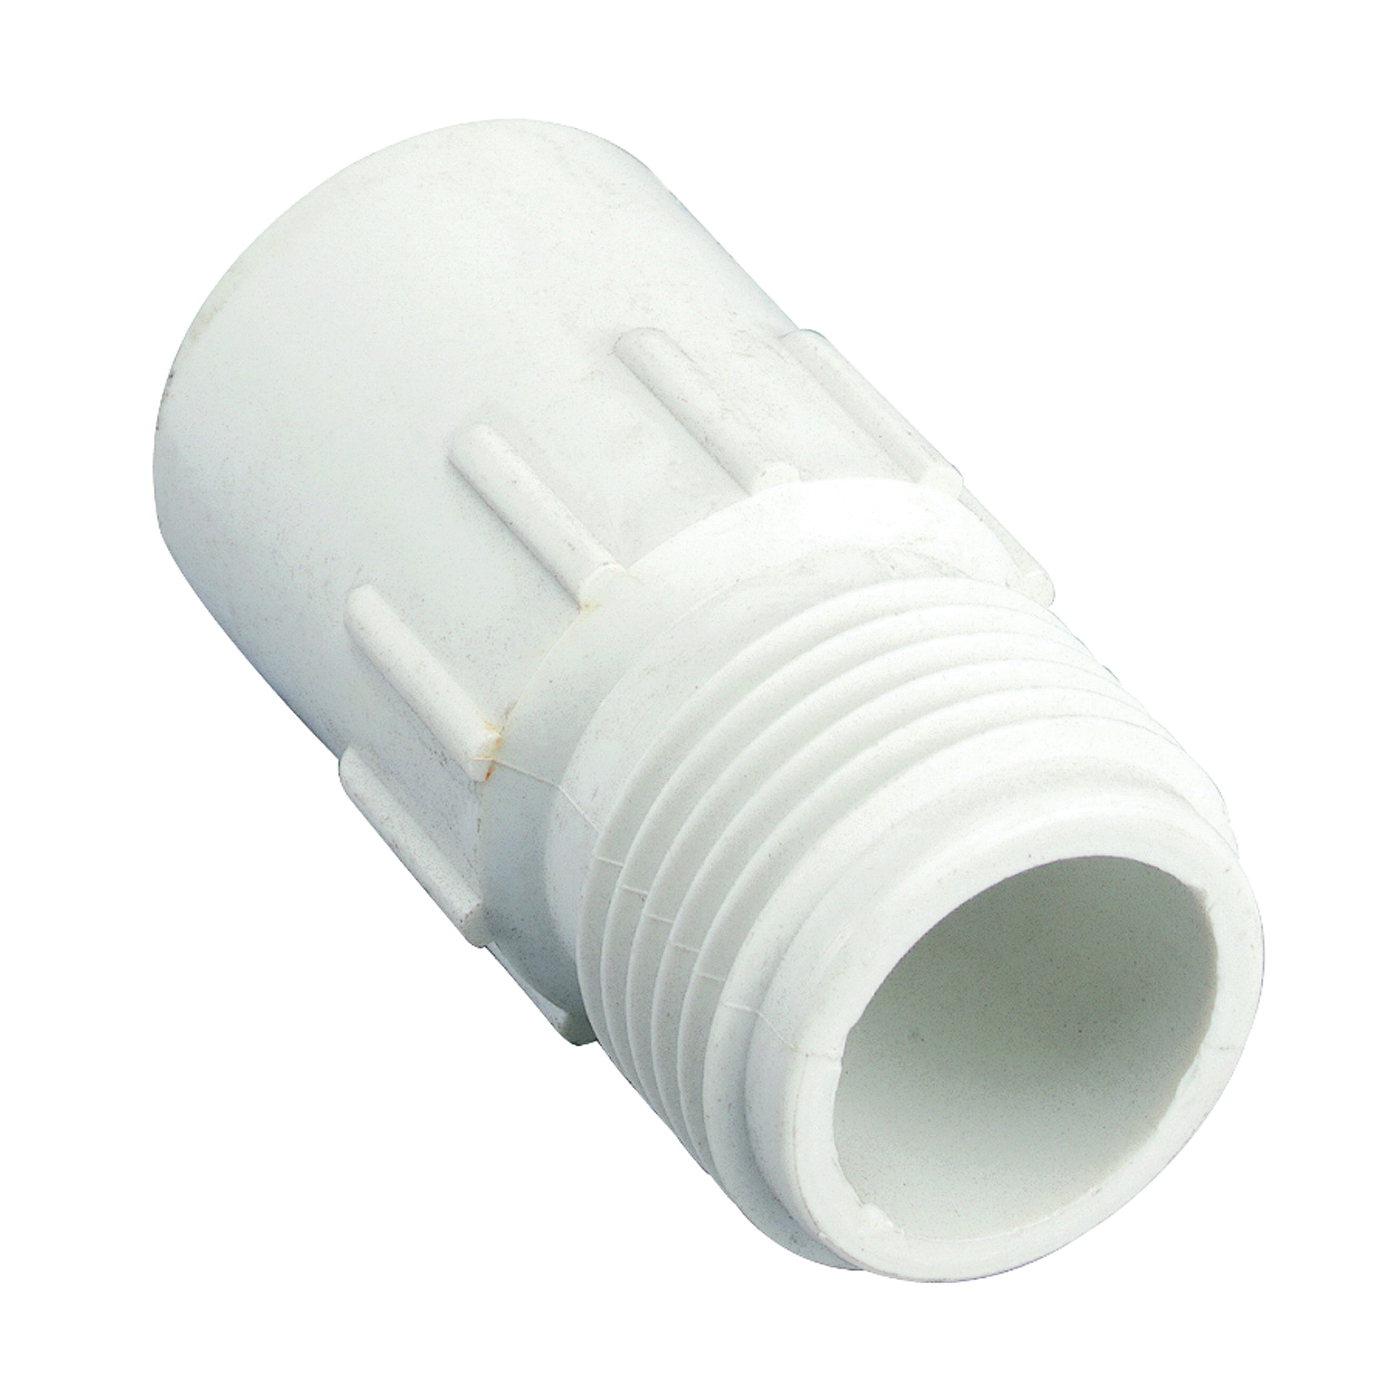 Picture of Orbit 53361 Hose to Pipe Adapter, 3/4 x 3/4 in, Slip Joint x MHT, Polyvinyl Chloride, White